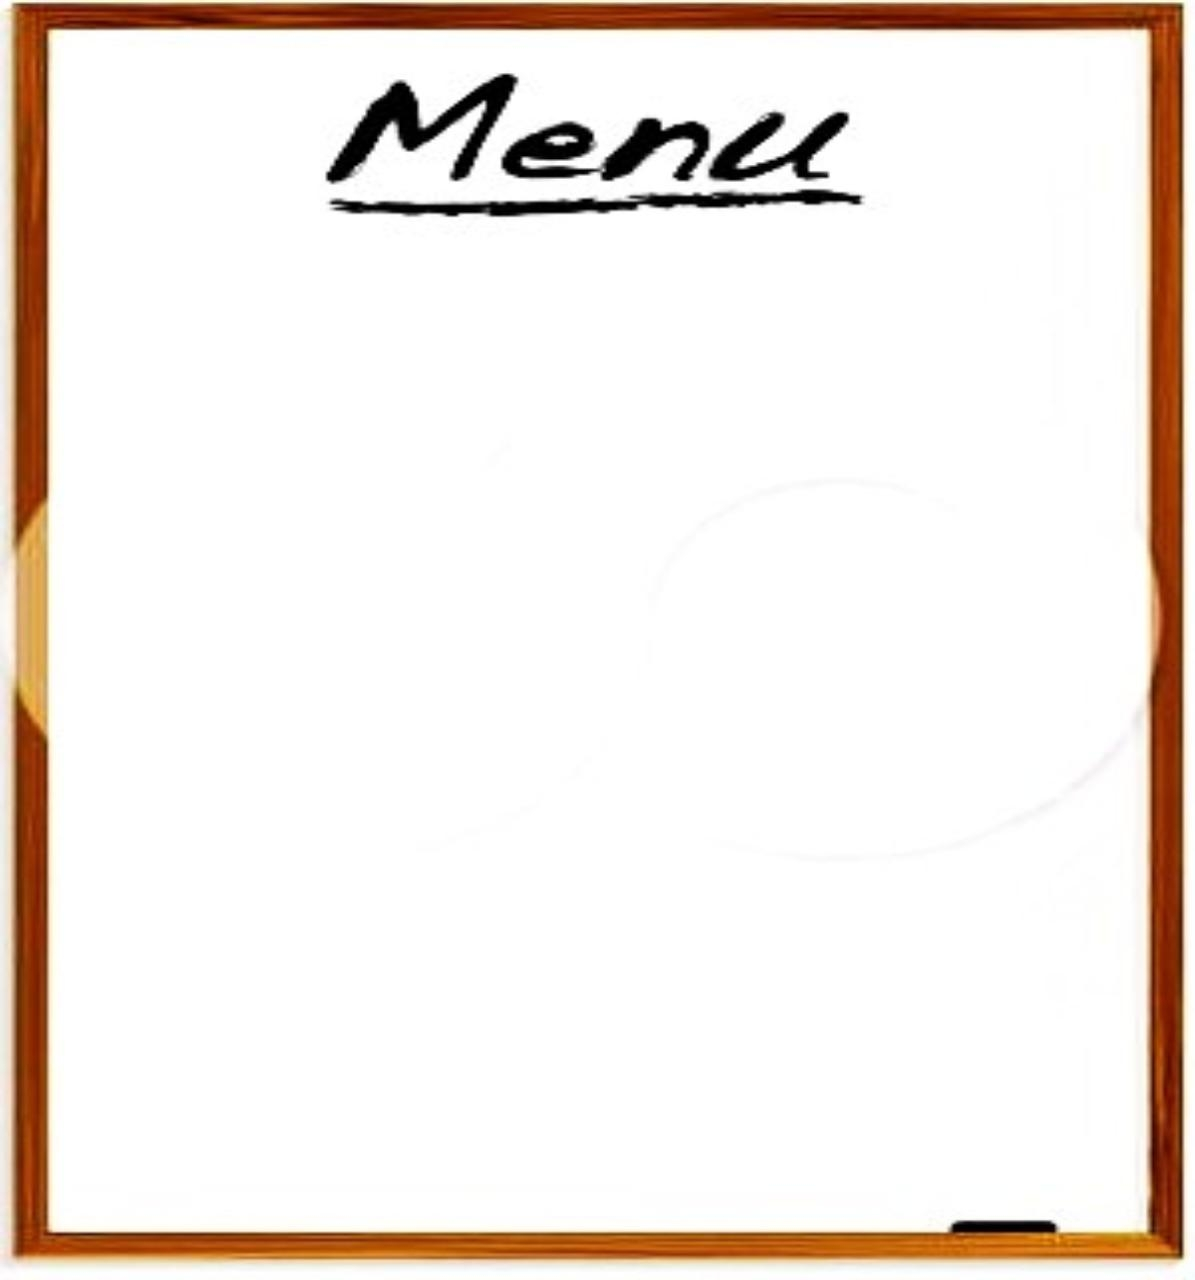 Fresh gallery digital collection. Menu clipart